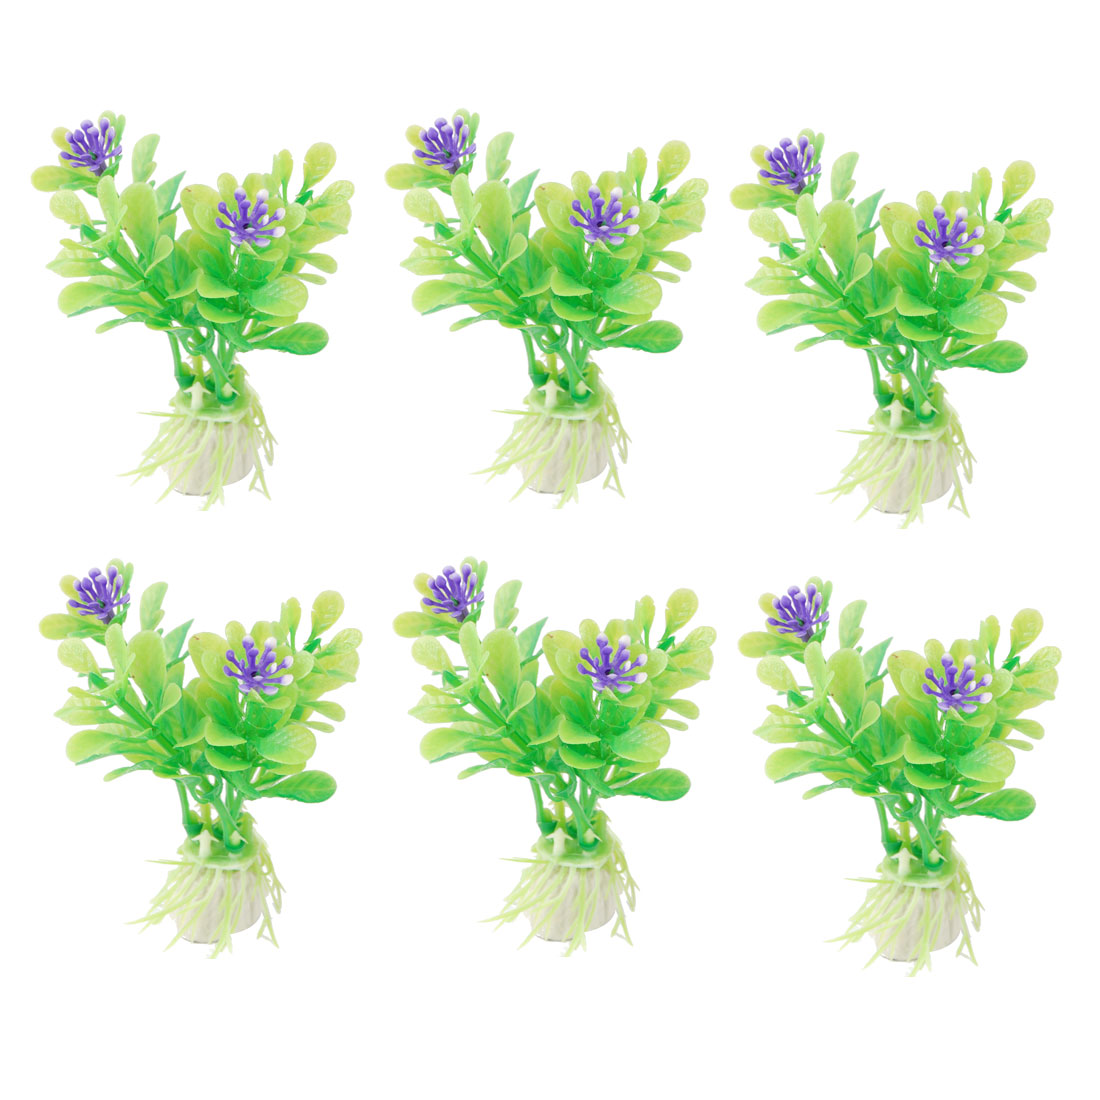 "10 Pcs Aquarium 3.2"" Height Purple Flower Decor Green Plastic Plants"